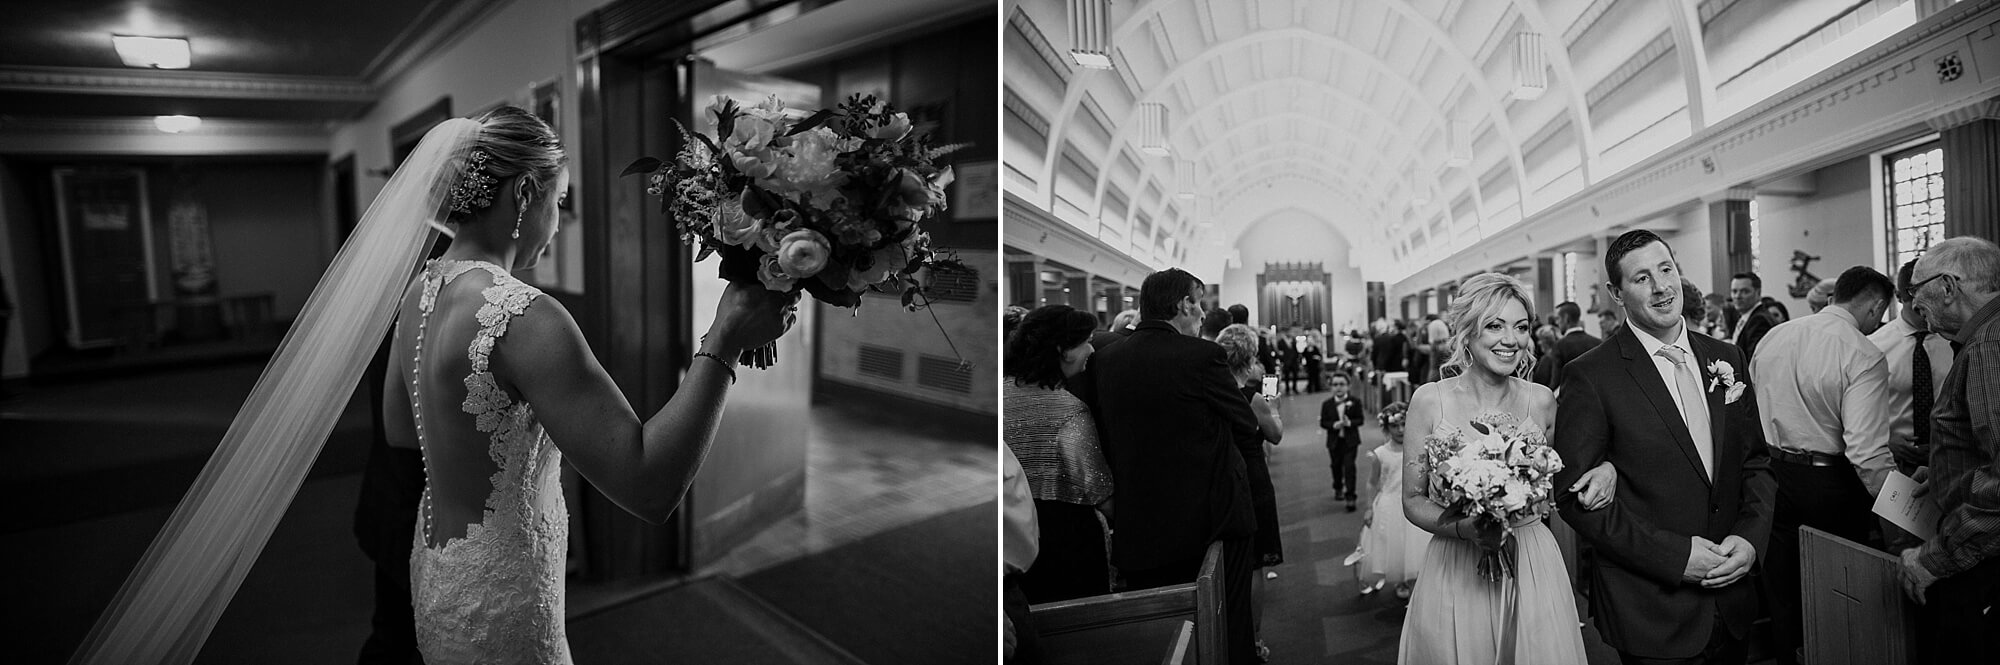 Irish Cultural Center Wedding-50.jpg